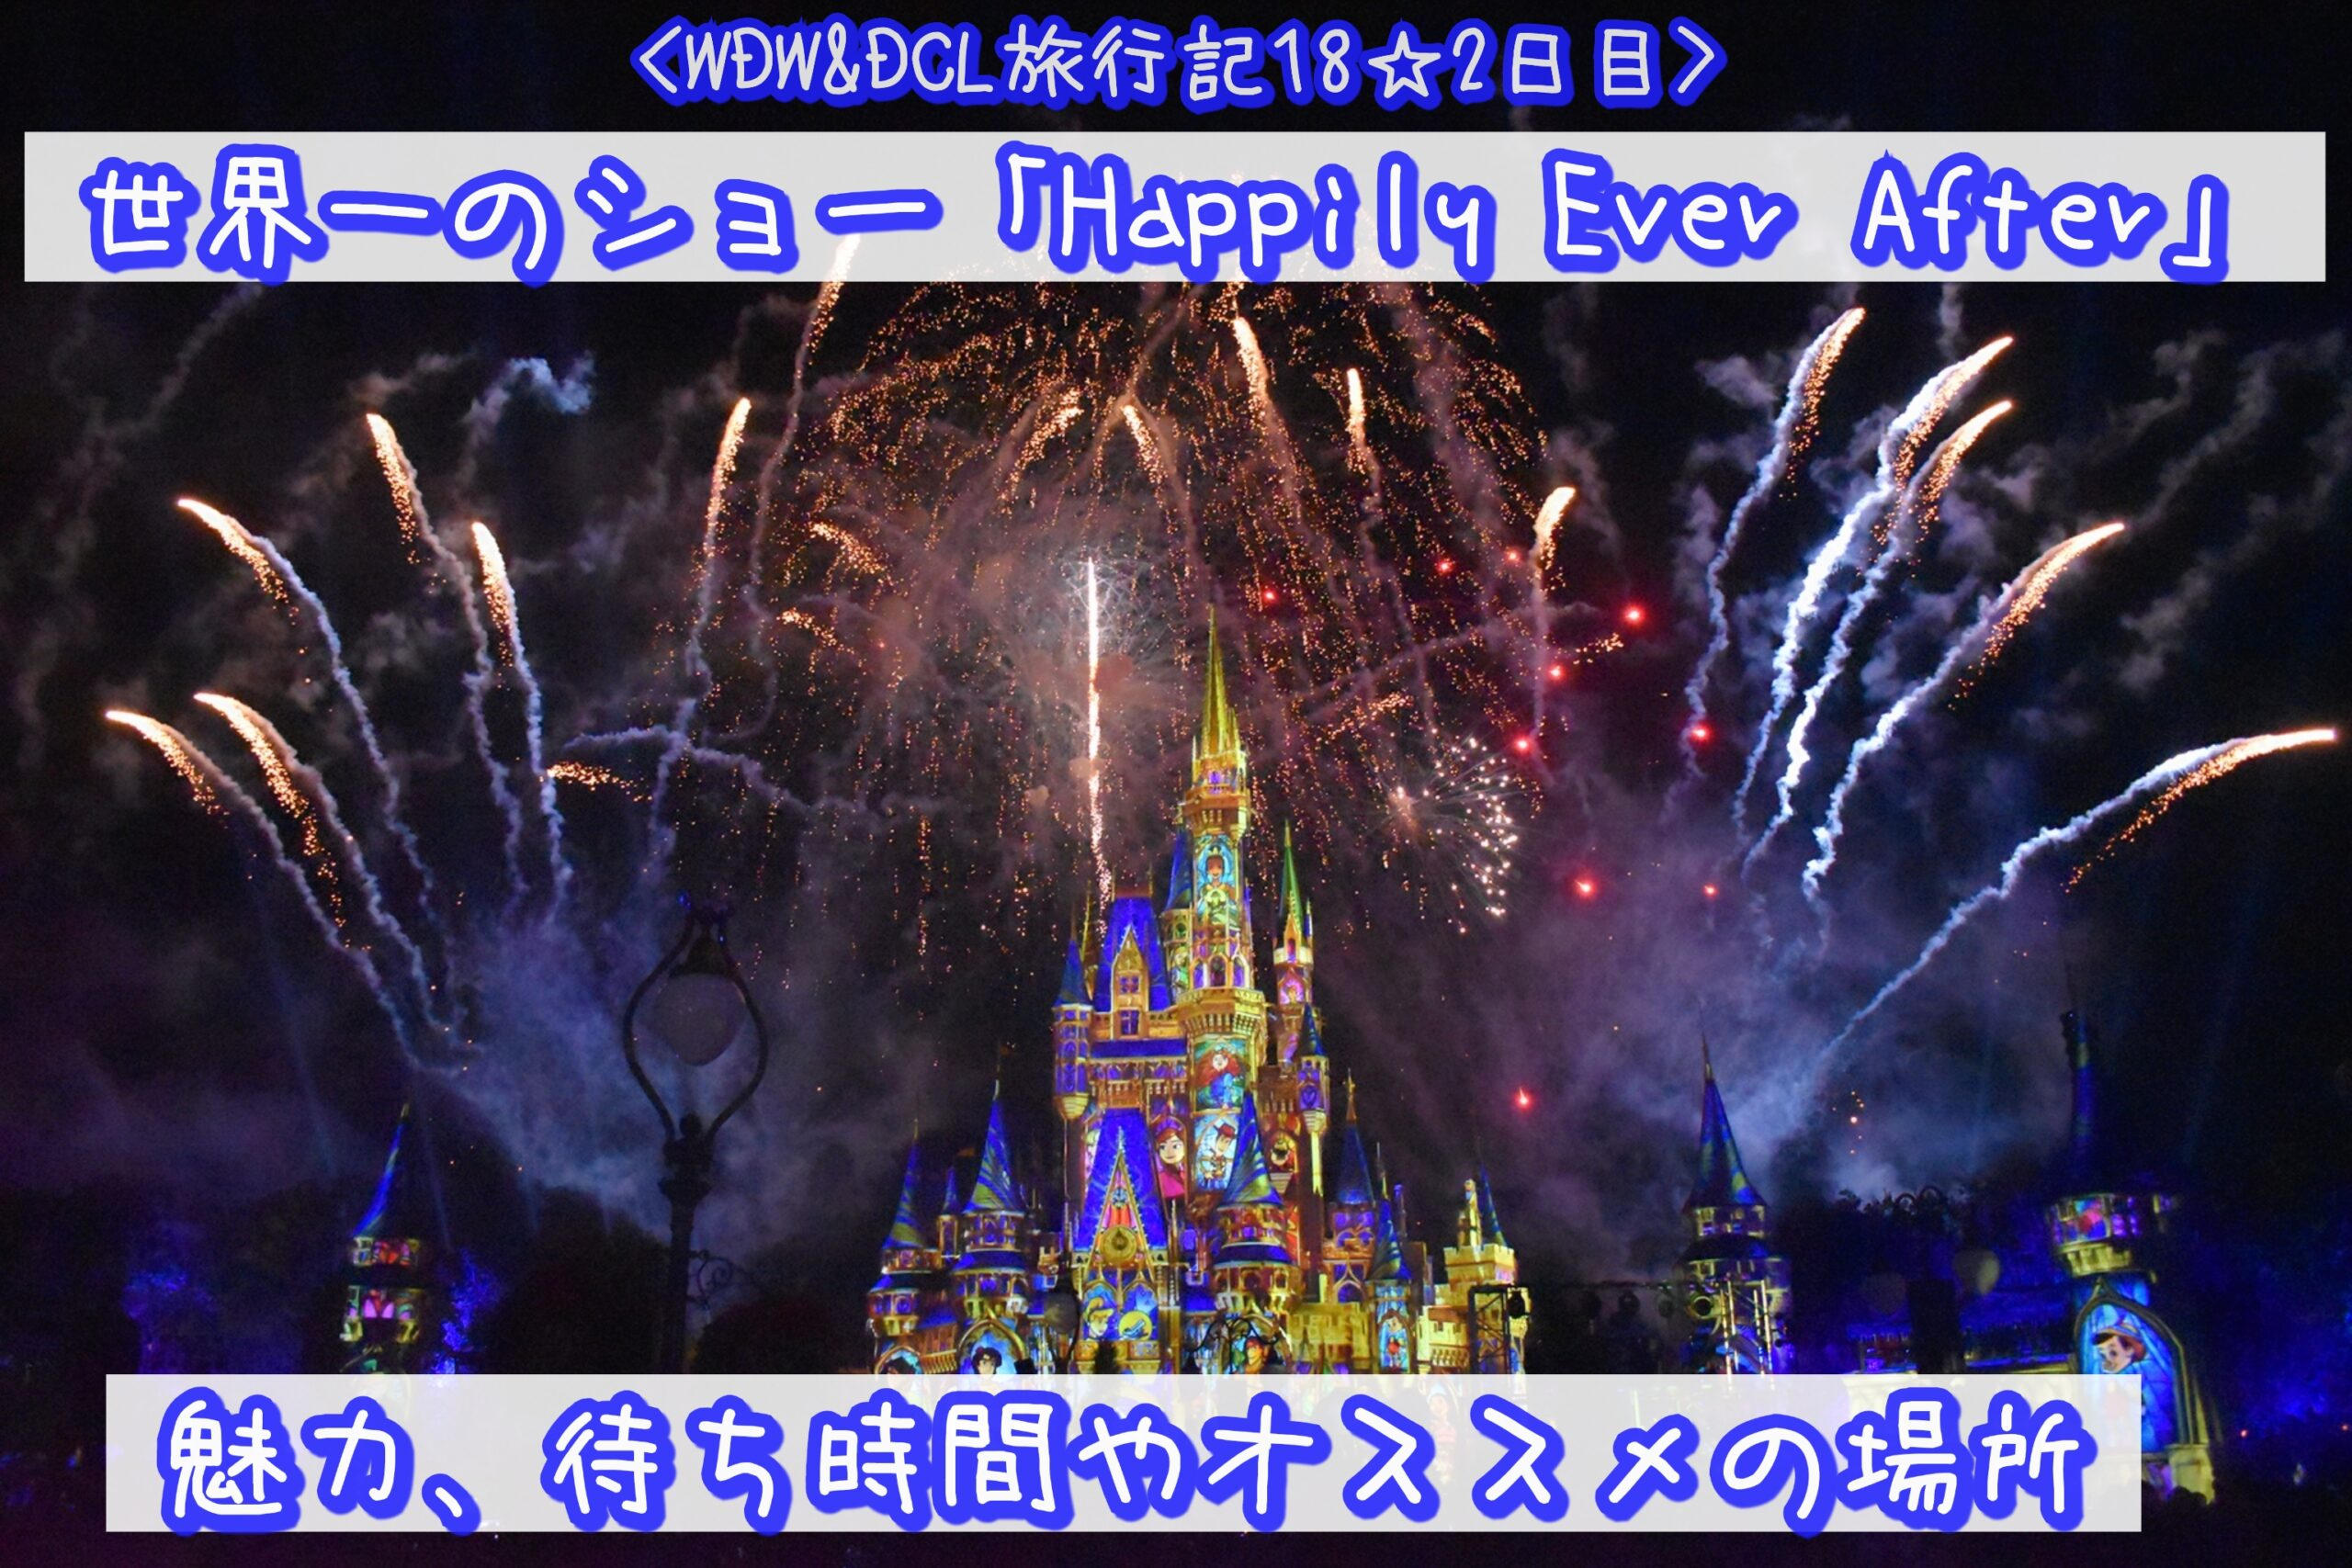 【WDW&DCL】世界一のショー「Happily Ever After」の魅力、待ち時間やオススメの場所